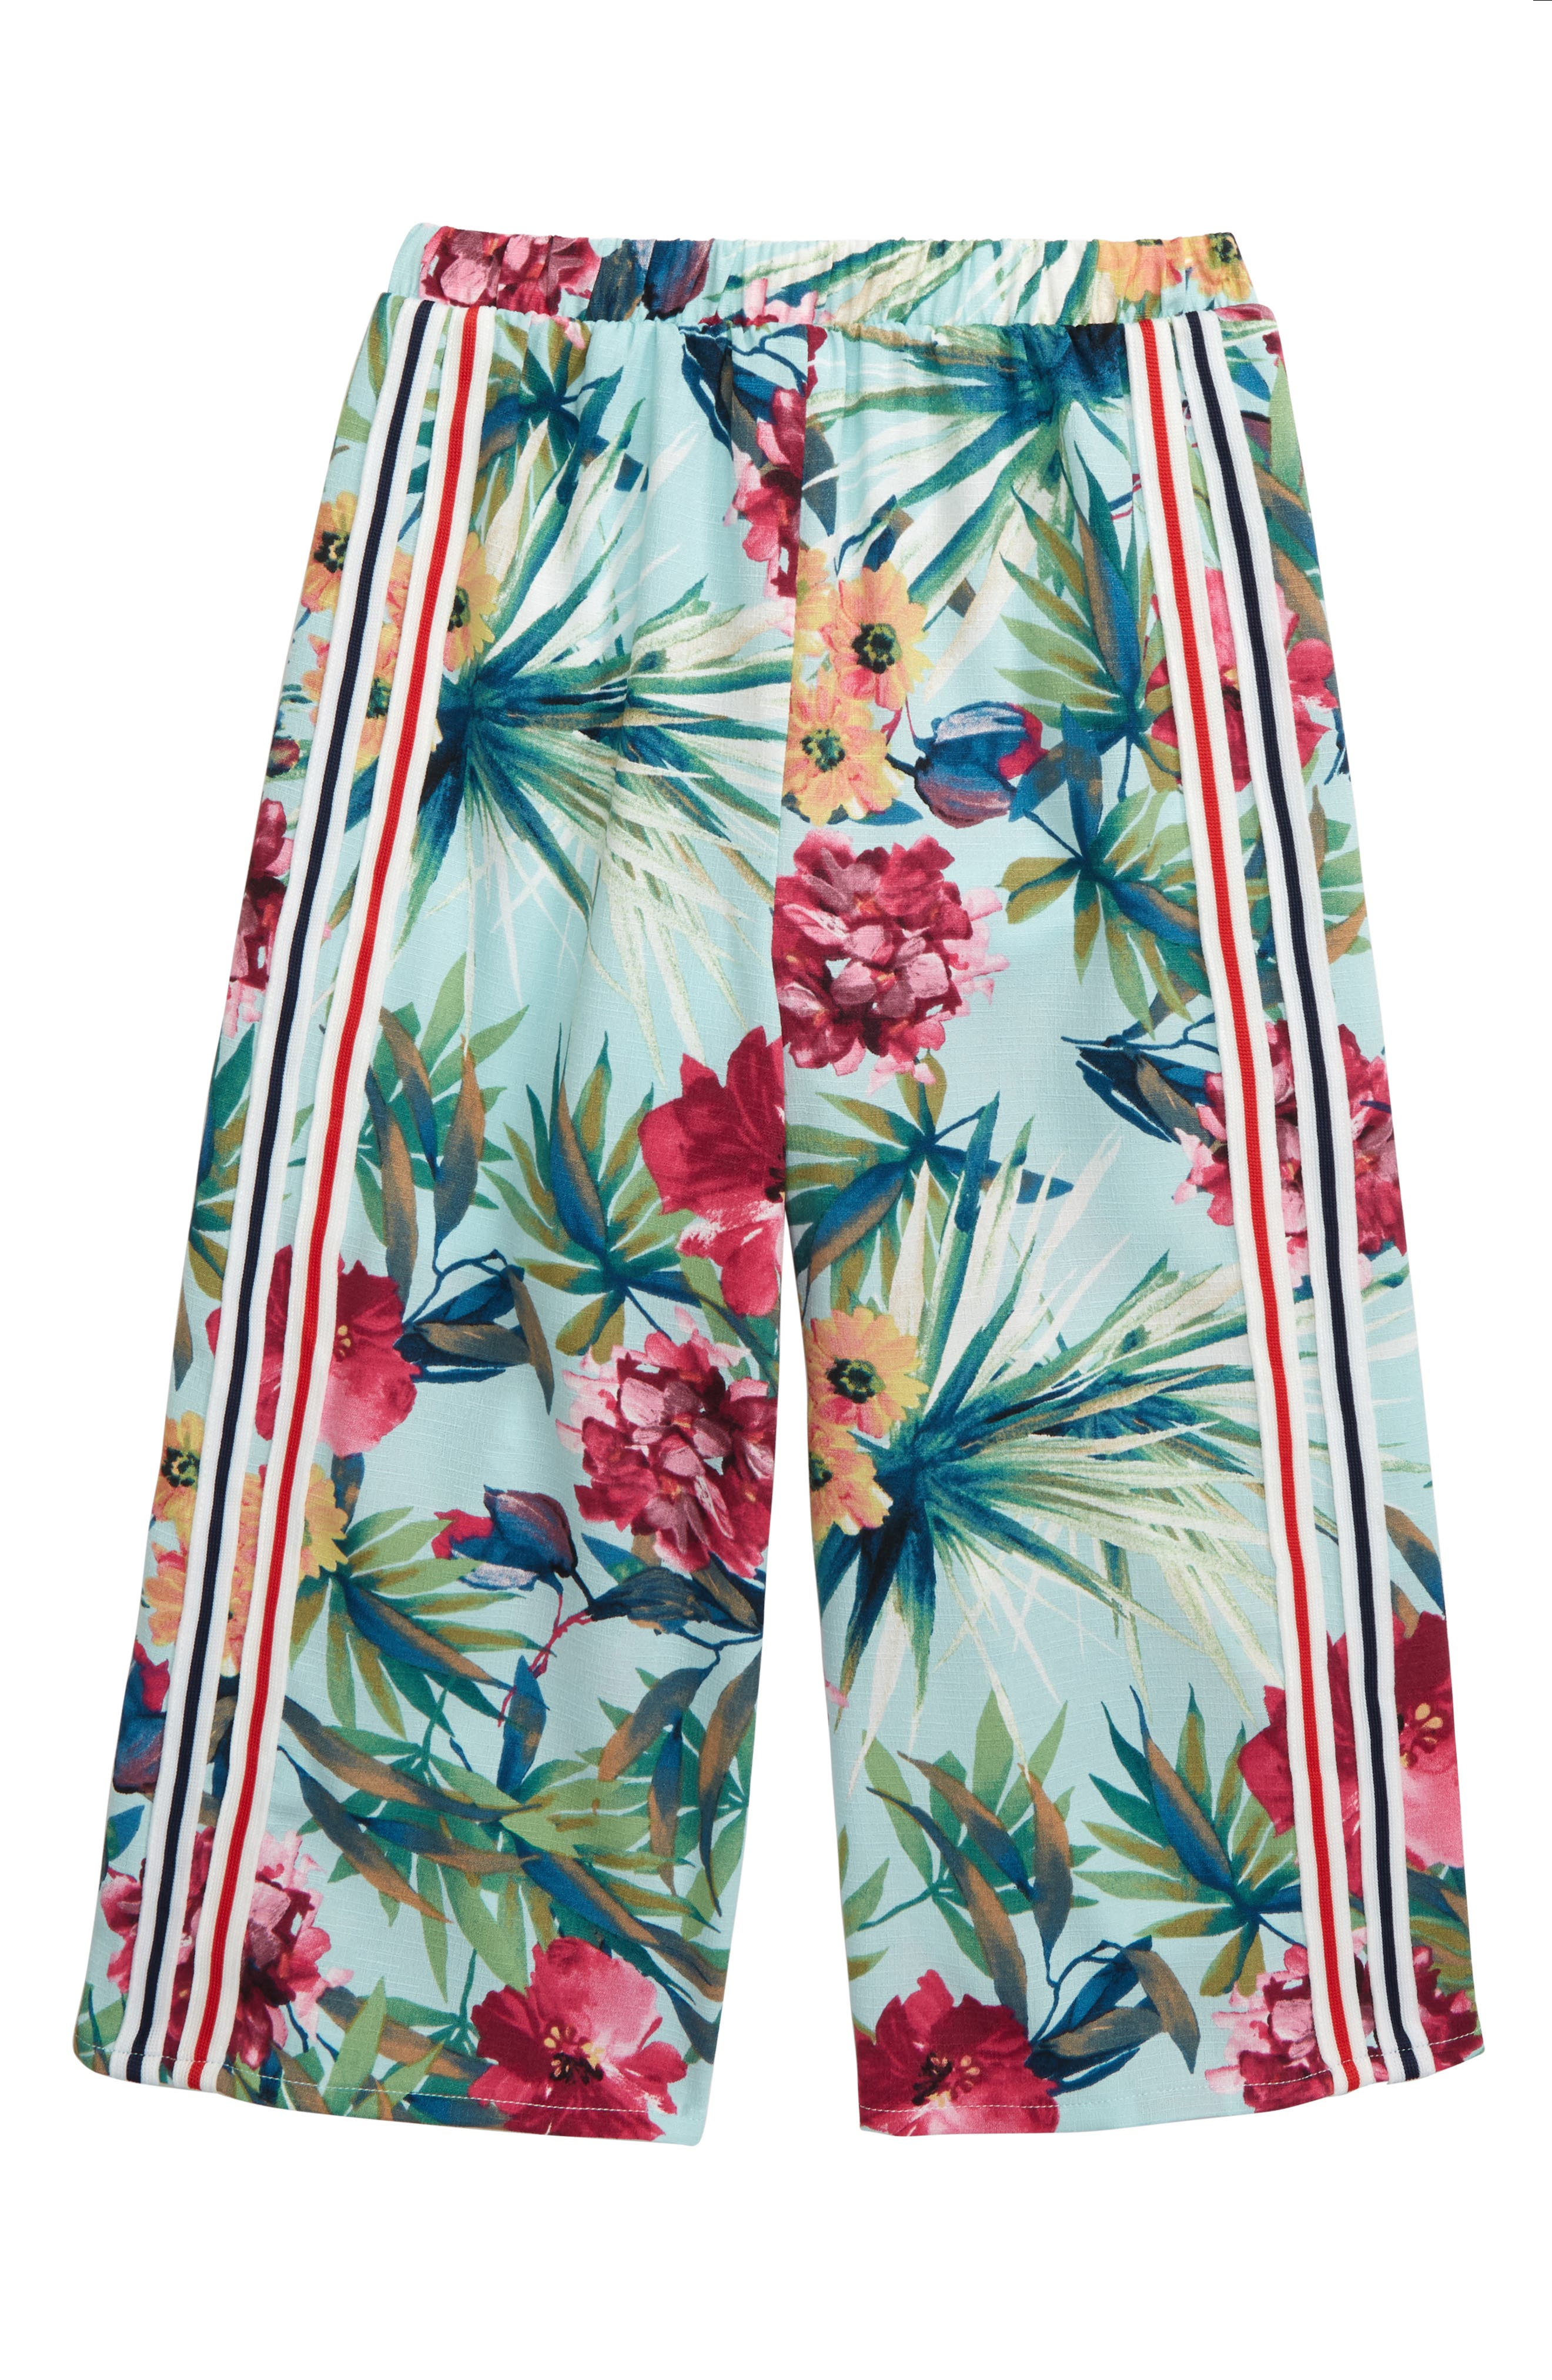 Toddler Girls Truly Me Floral Print Culottes Size 2T  Green